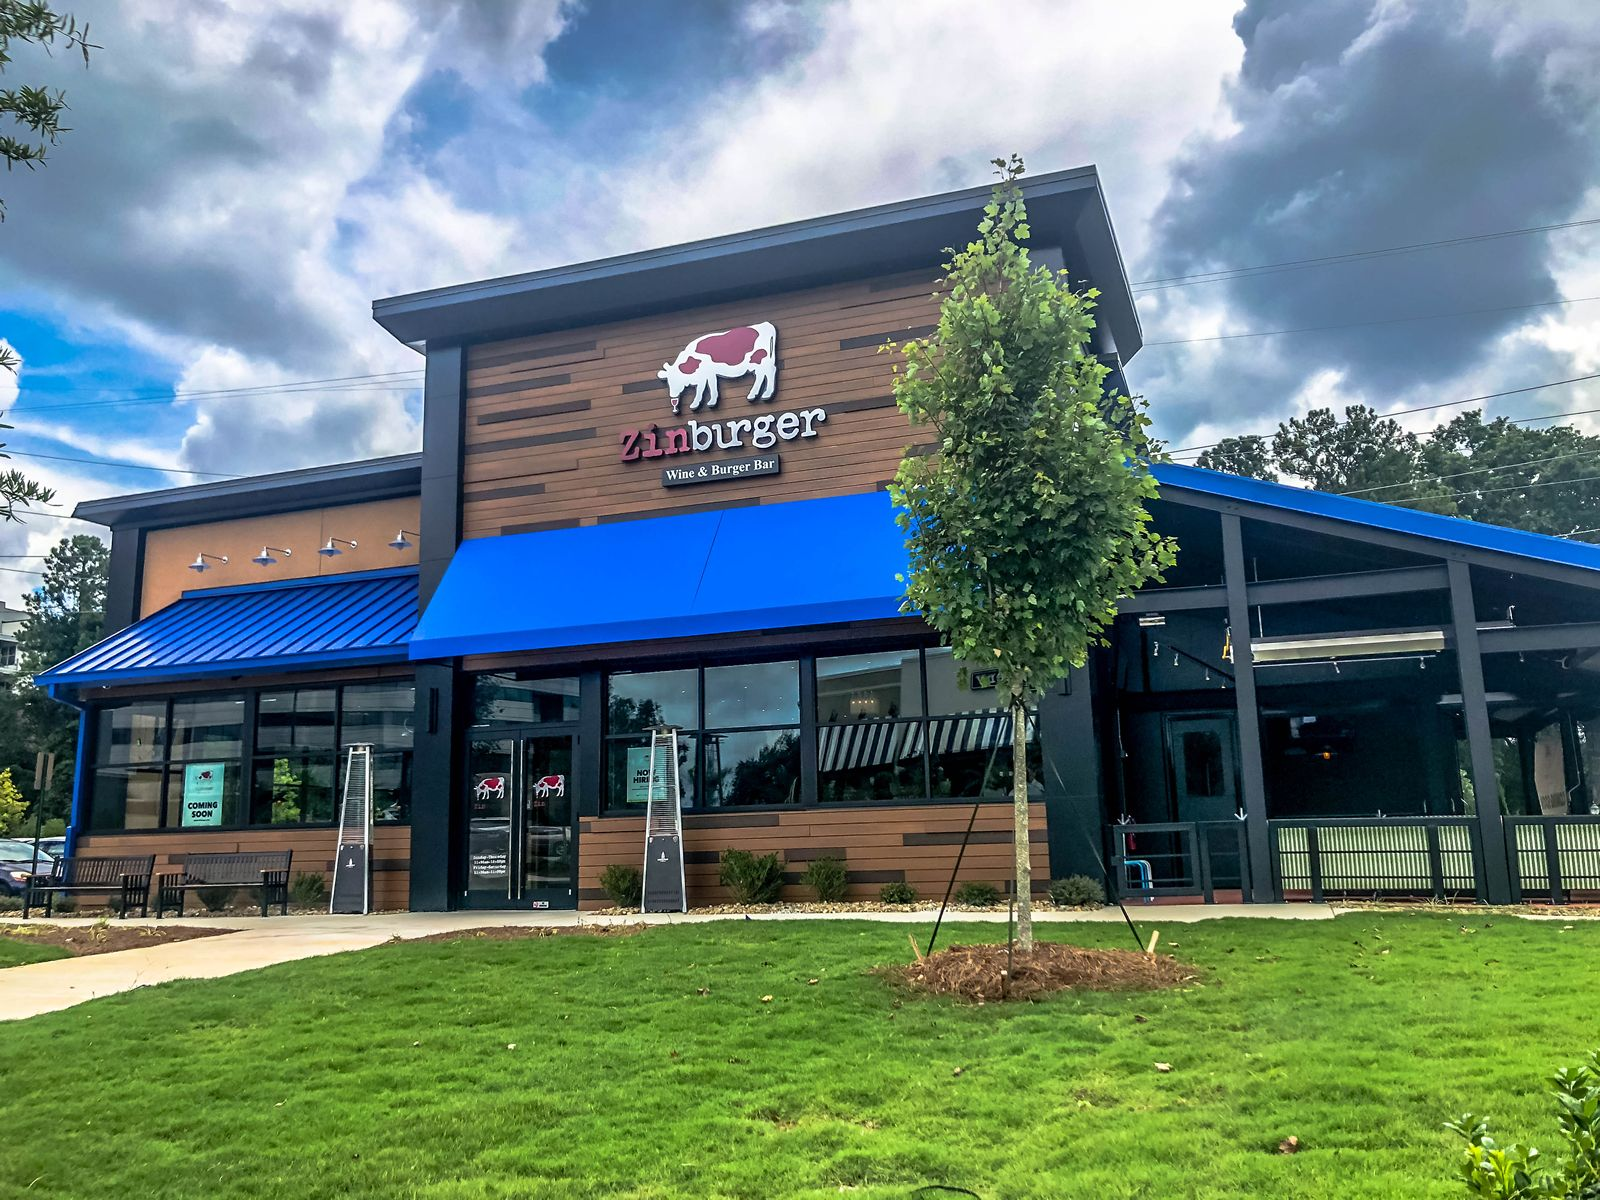 Zinburger Wine & Burger Bar Opens Second Atlanta Location With Perimeter Grand Opening on September 18, 2018